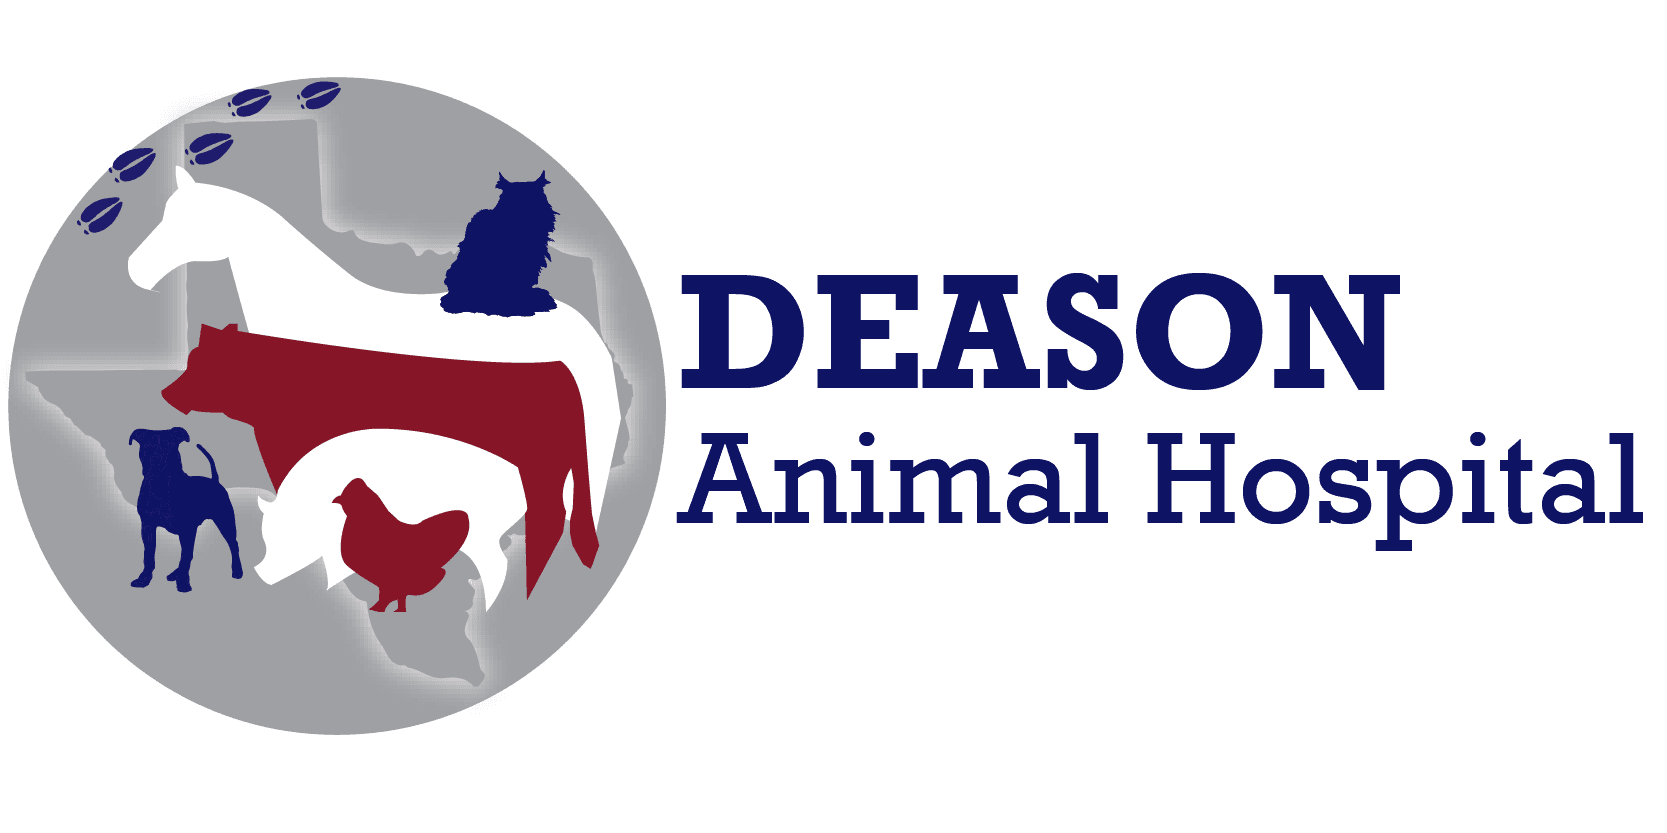 Horse diagnostic services in Floresville Texas, Stockdale, Pleasanton and Wilson County Texas